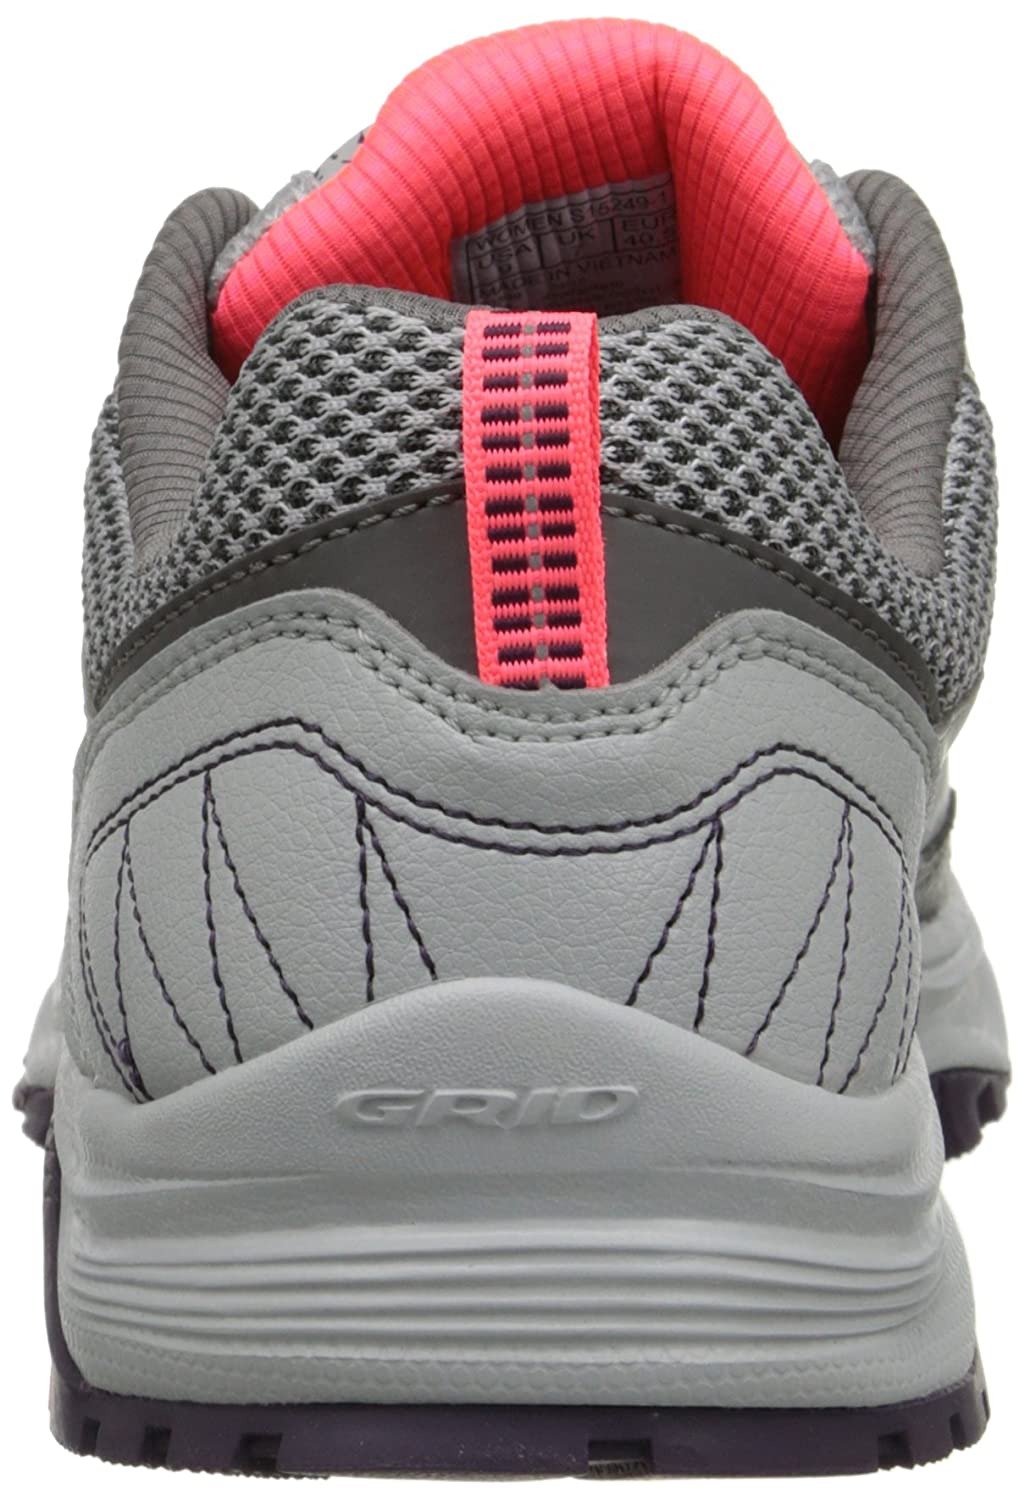 Saucony Women's Grid Excursion TR9 Trail Running Shoe B00PJAB8SE 7 B(M) US|Grey/Plum/Coral